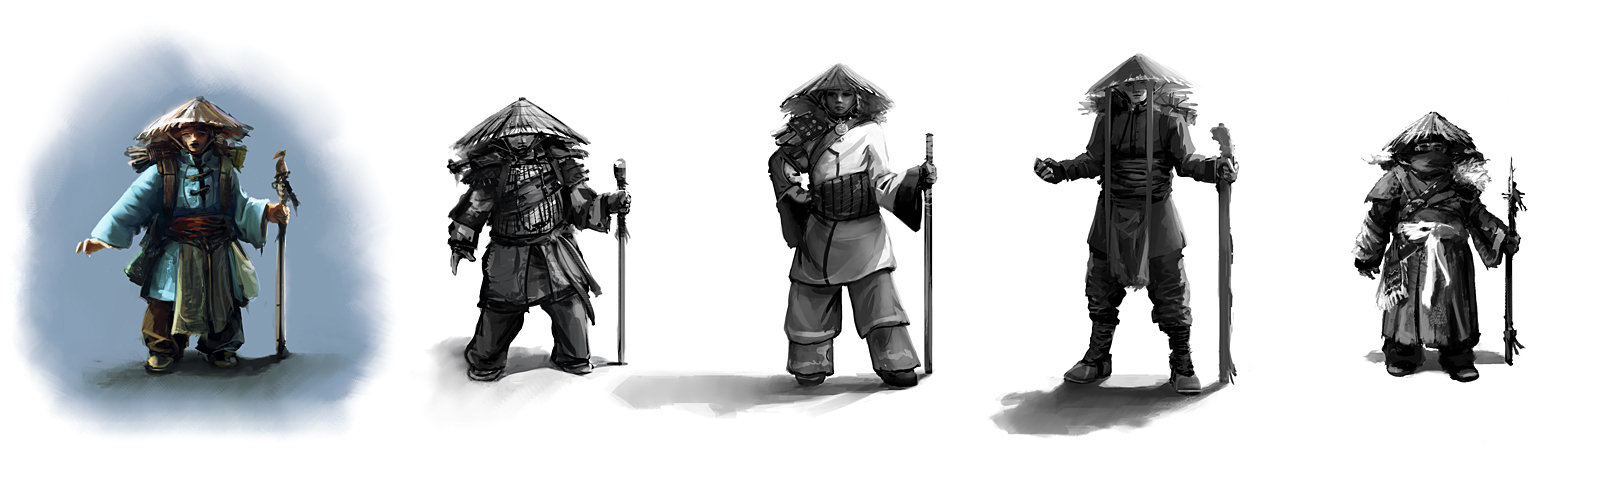 Wanderer Character Exploration